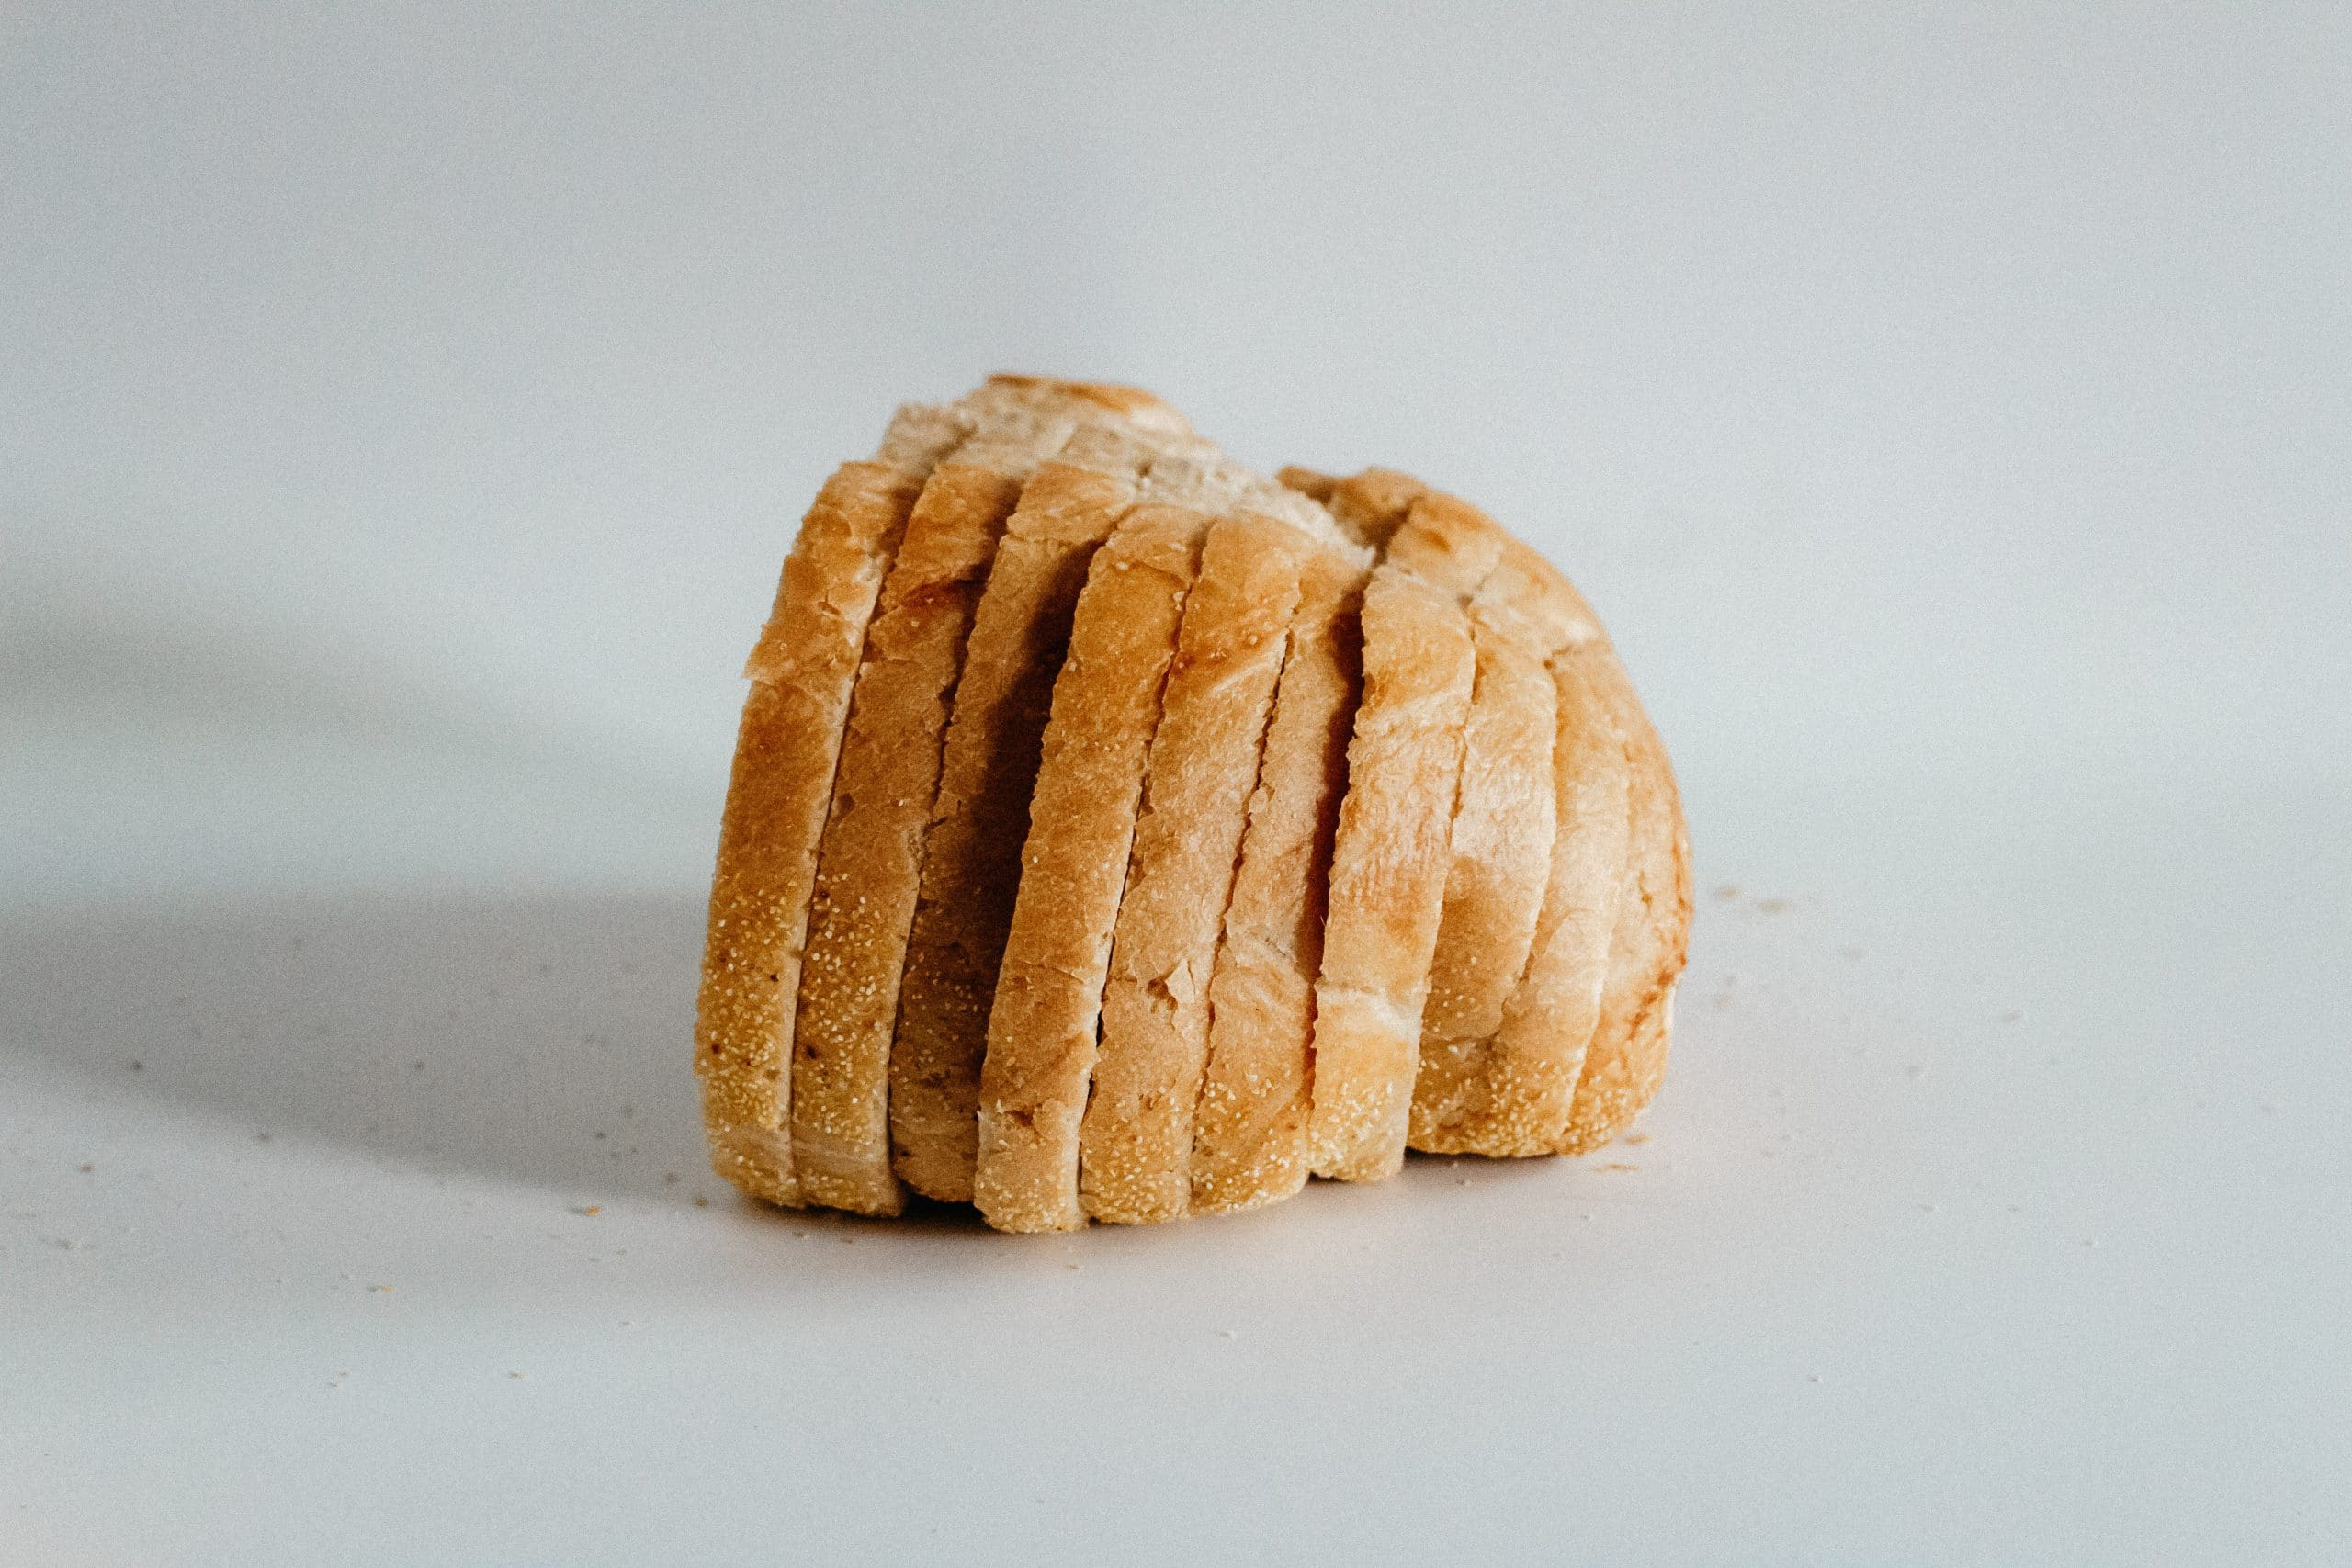 sliced bread (picture of carbohydrates)